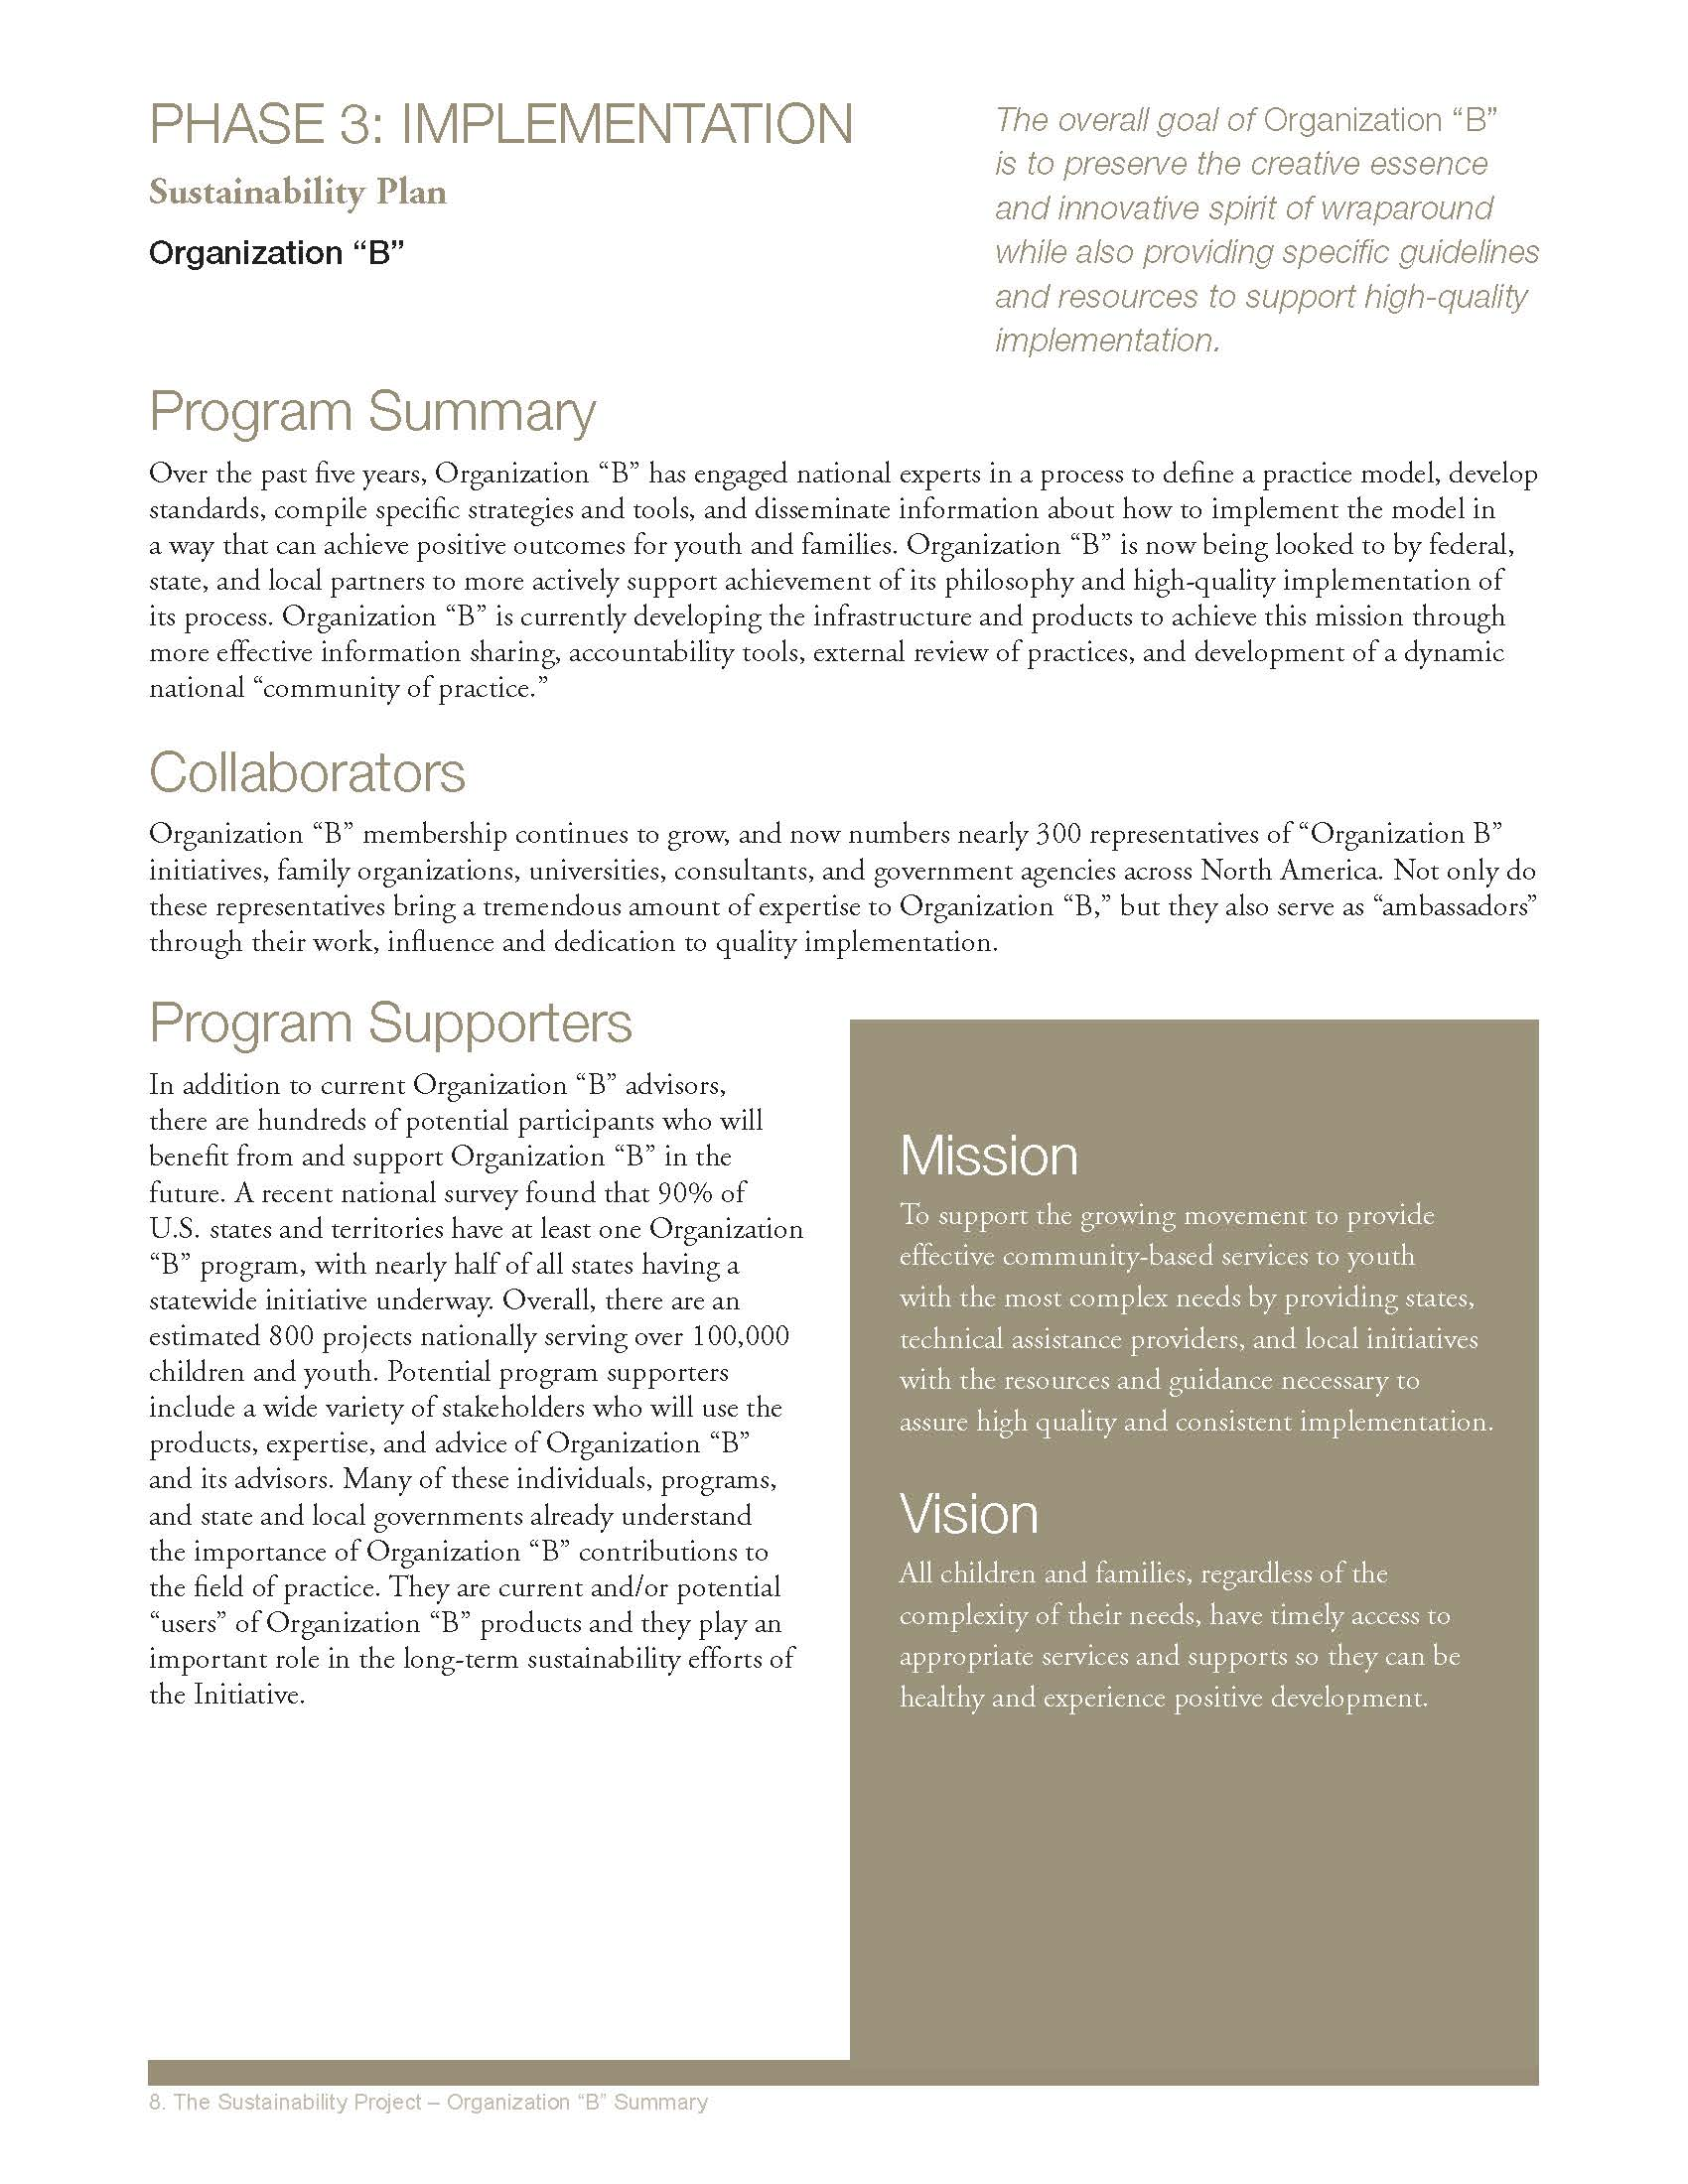 The Sustainability Project_Page_08.jpg